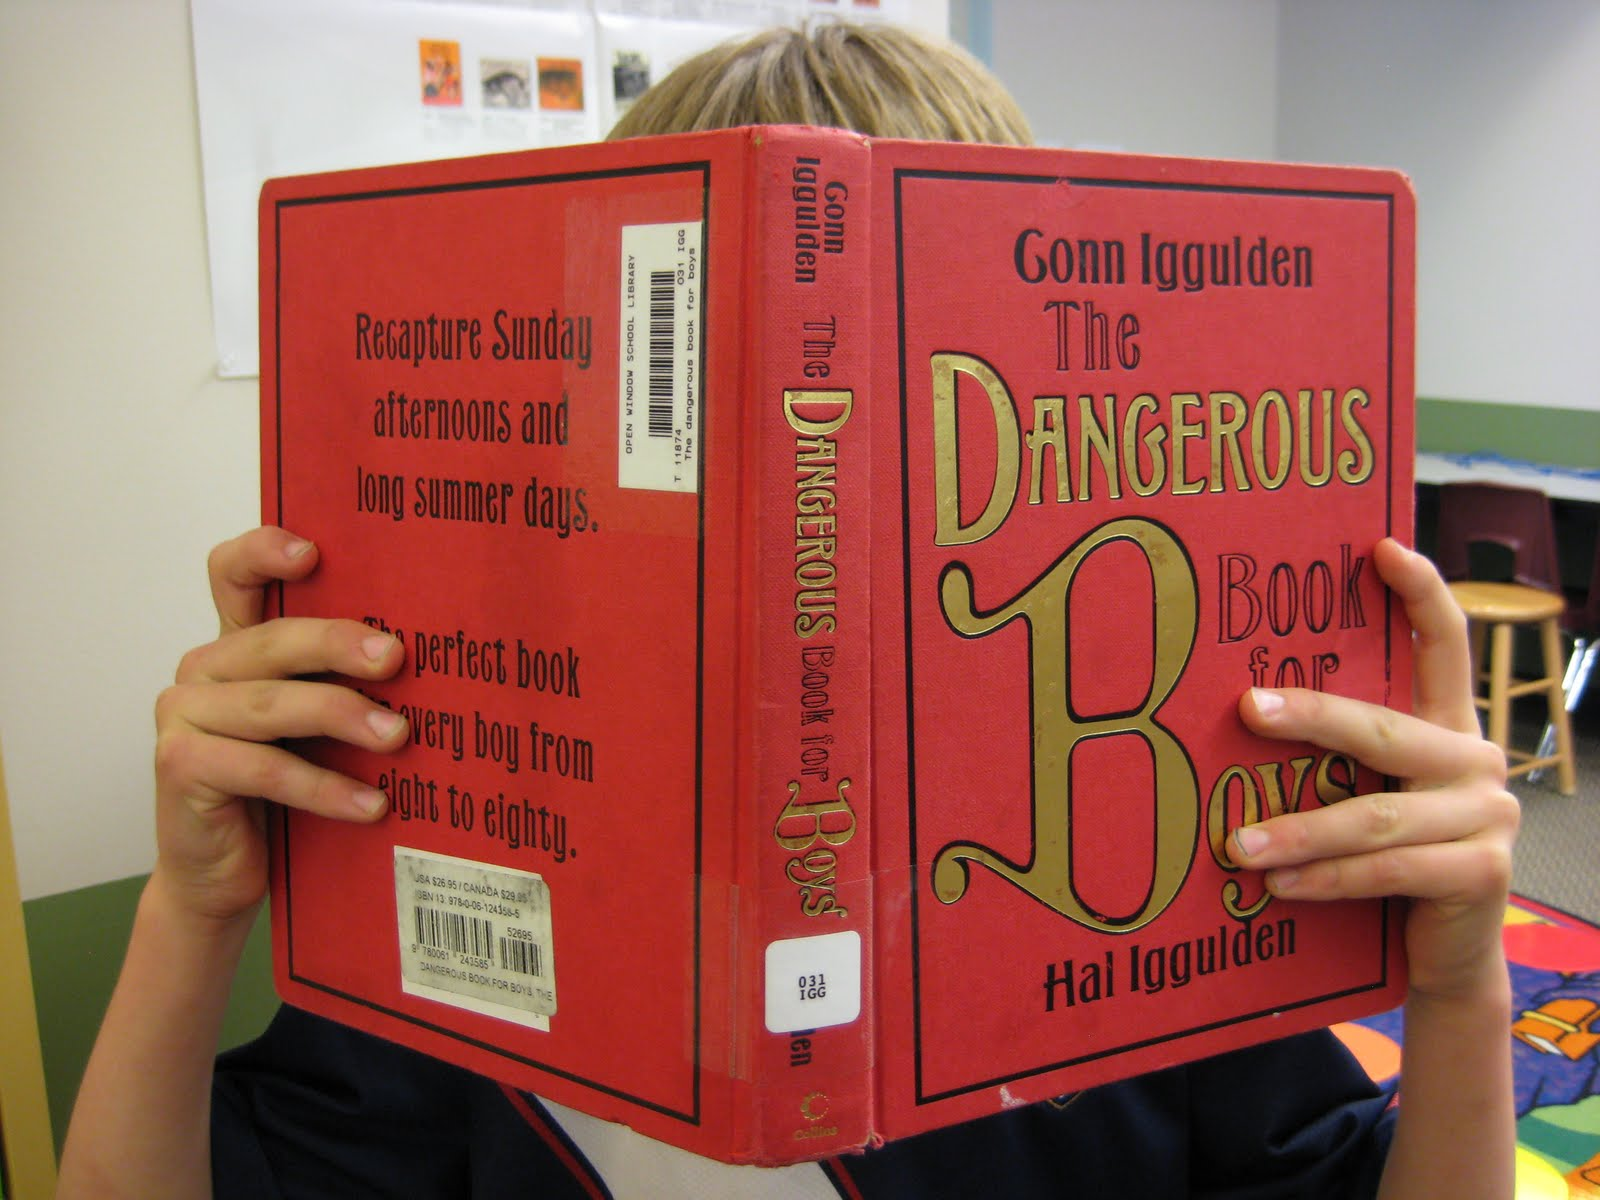 OWS 4th grader poses behind his favorite book.